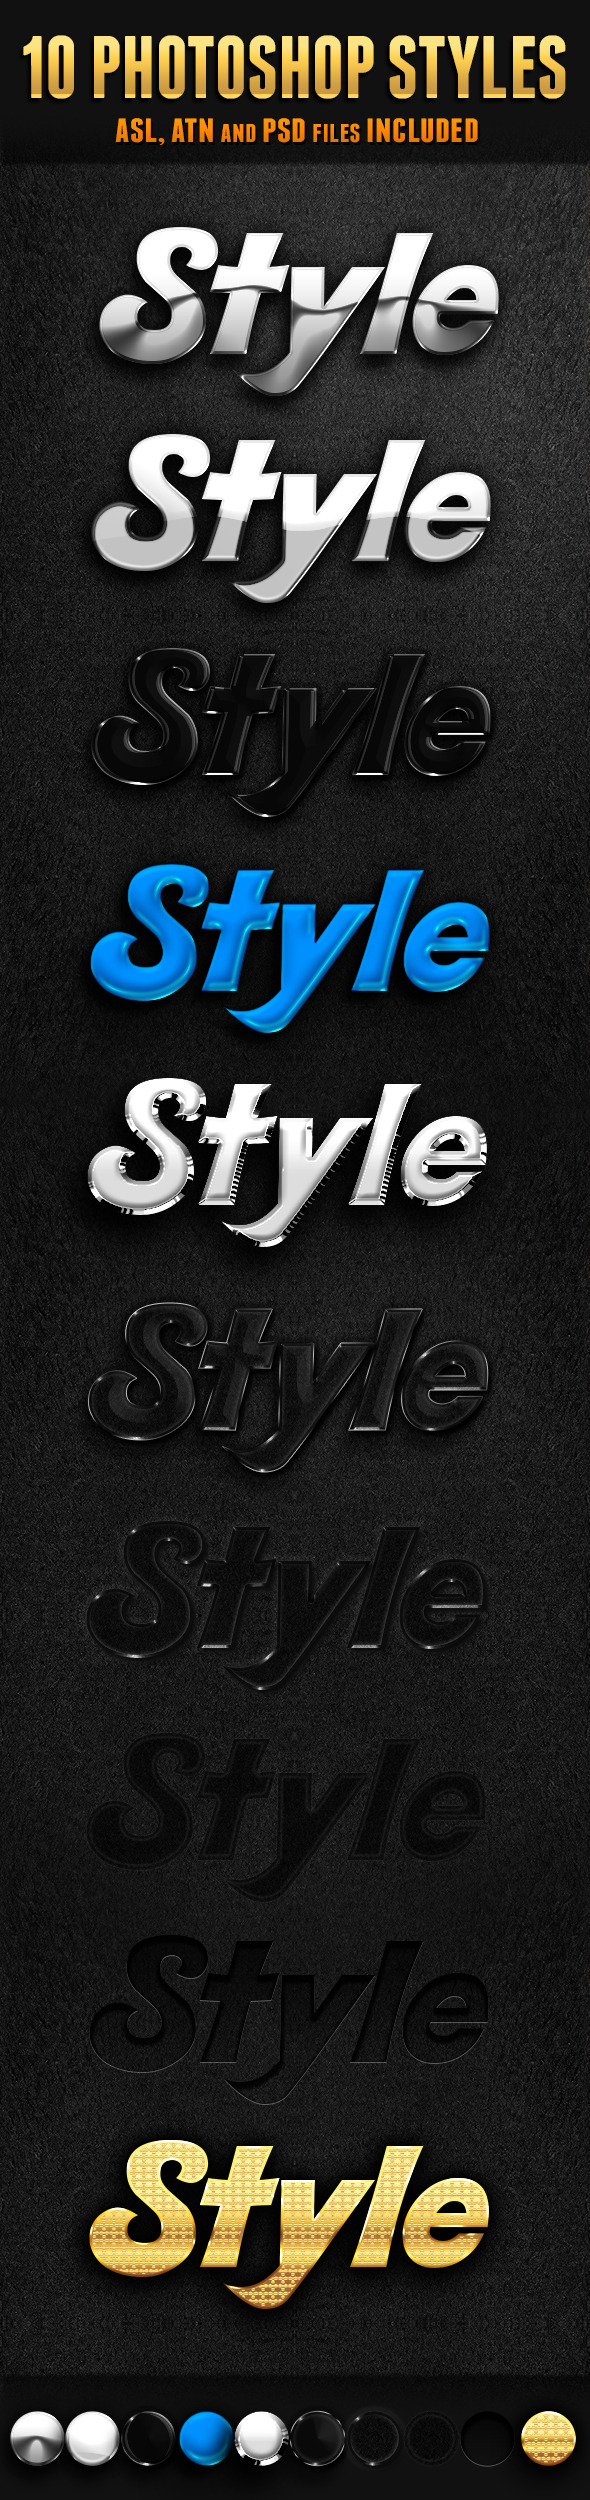 10 Photoshop Styles - Text Effects Styles